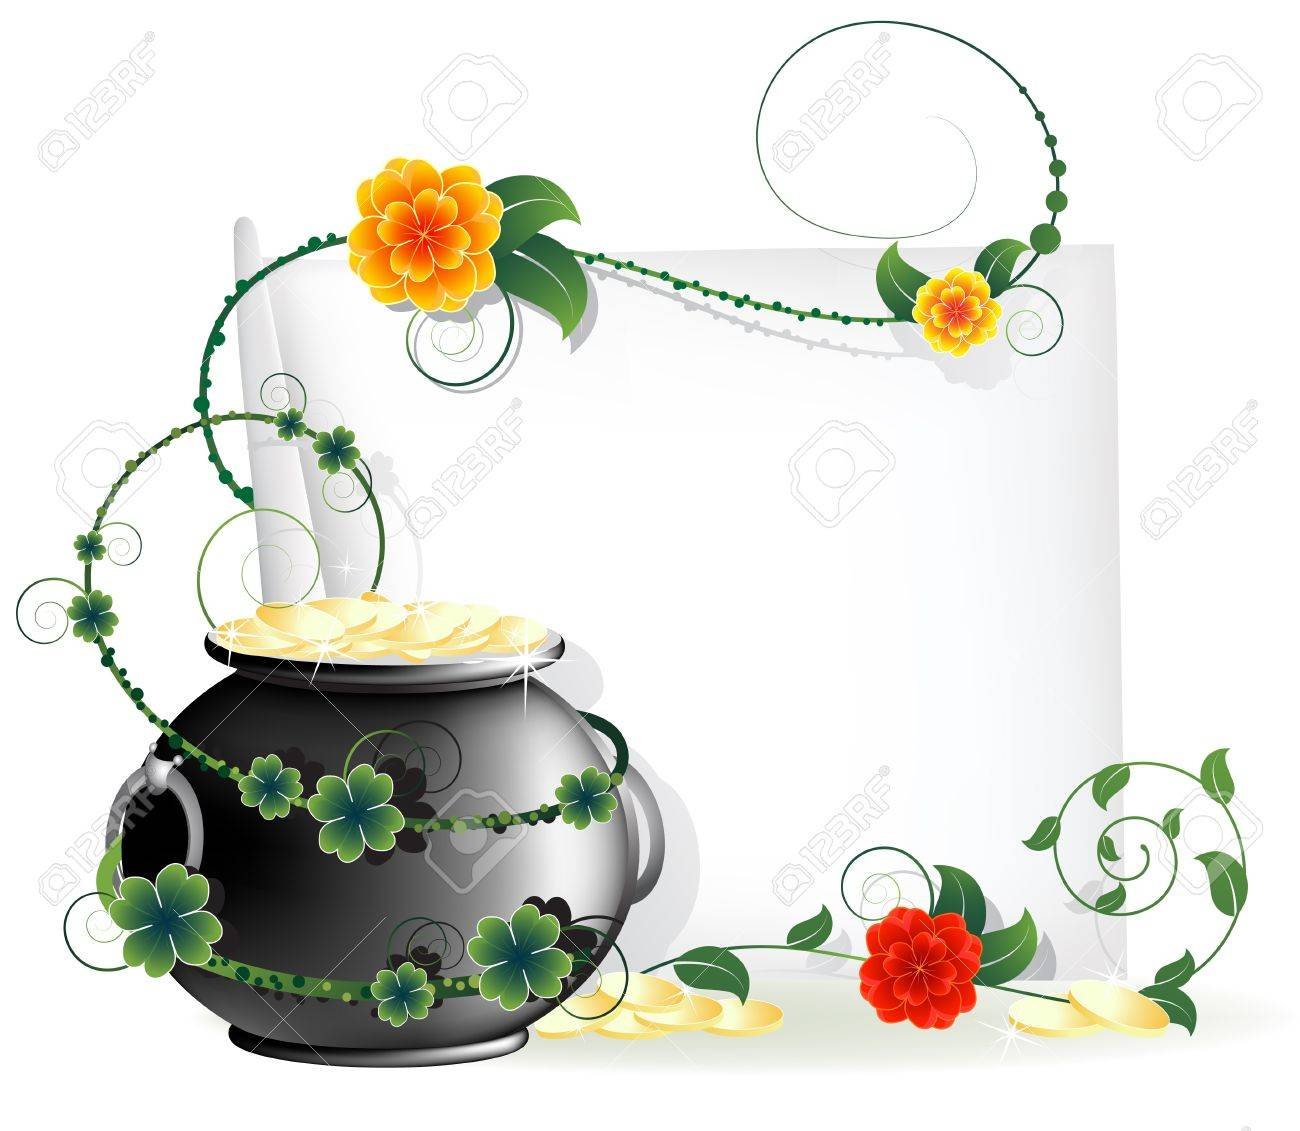 Kettle with gold coins and a blank sheet of paper entwined with ivy  St Patrick s Day abstract background Stock Vector - 12828609